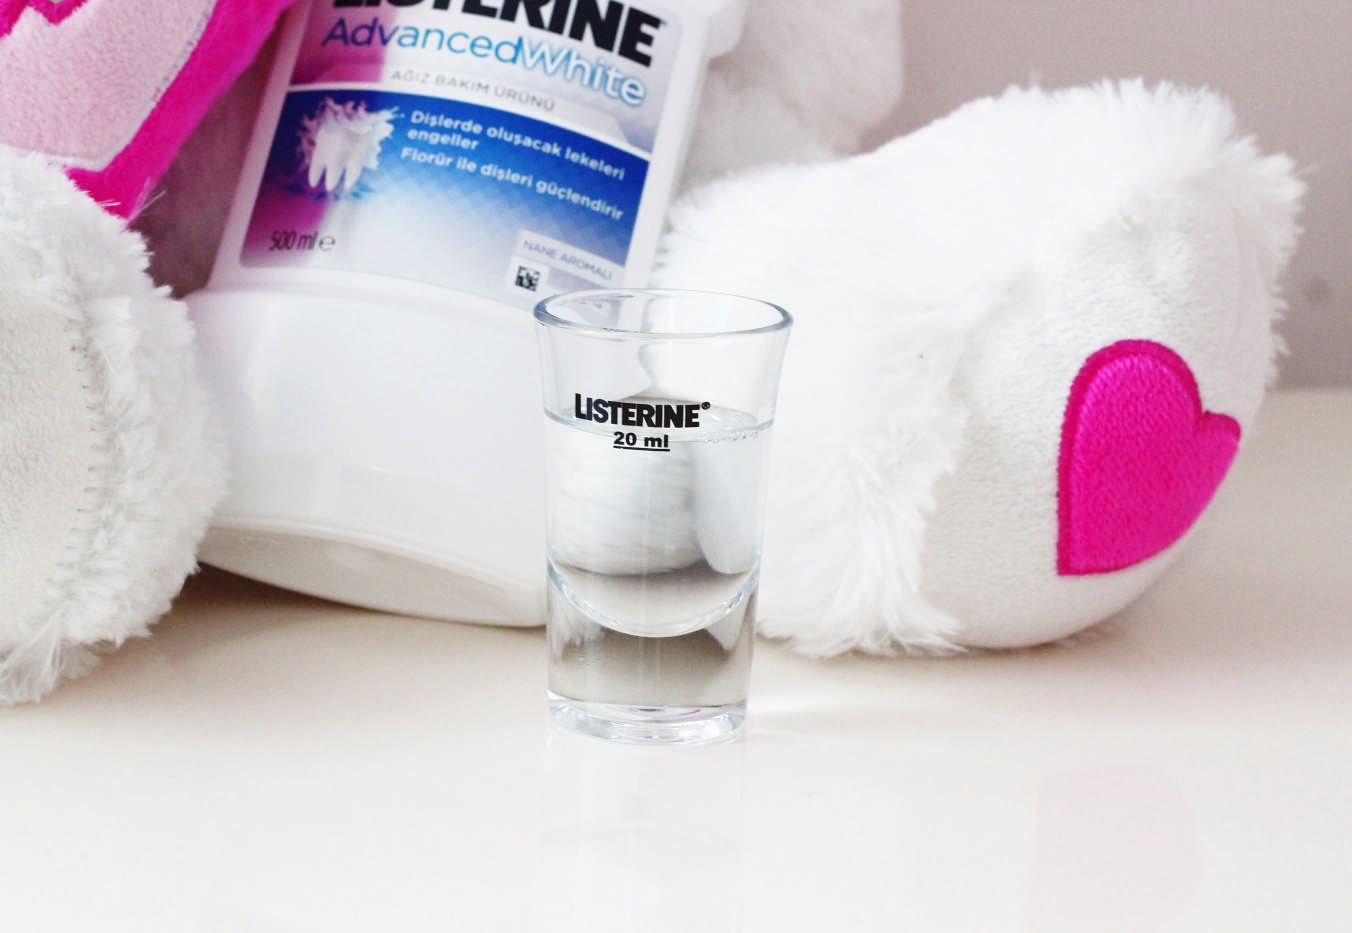 listerine-advanced-white (1)